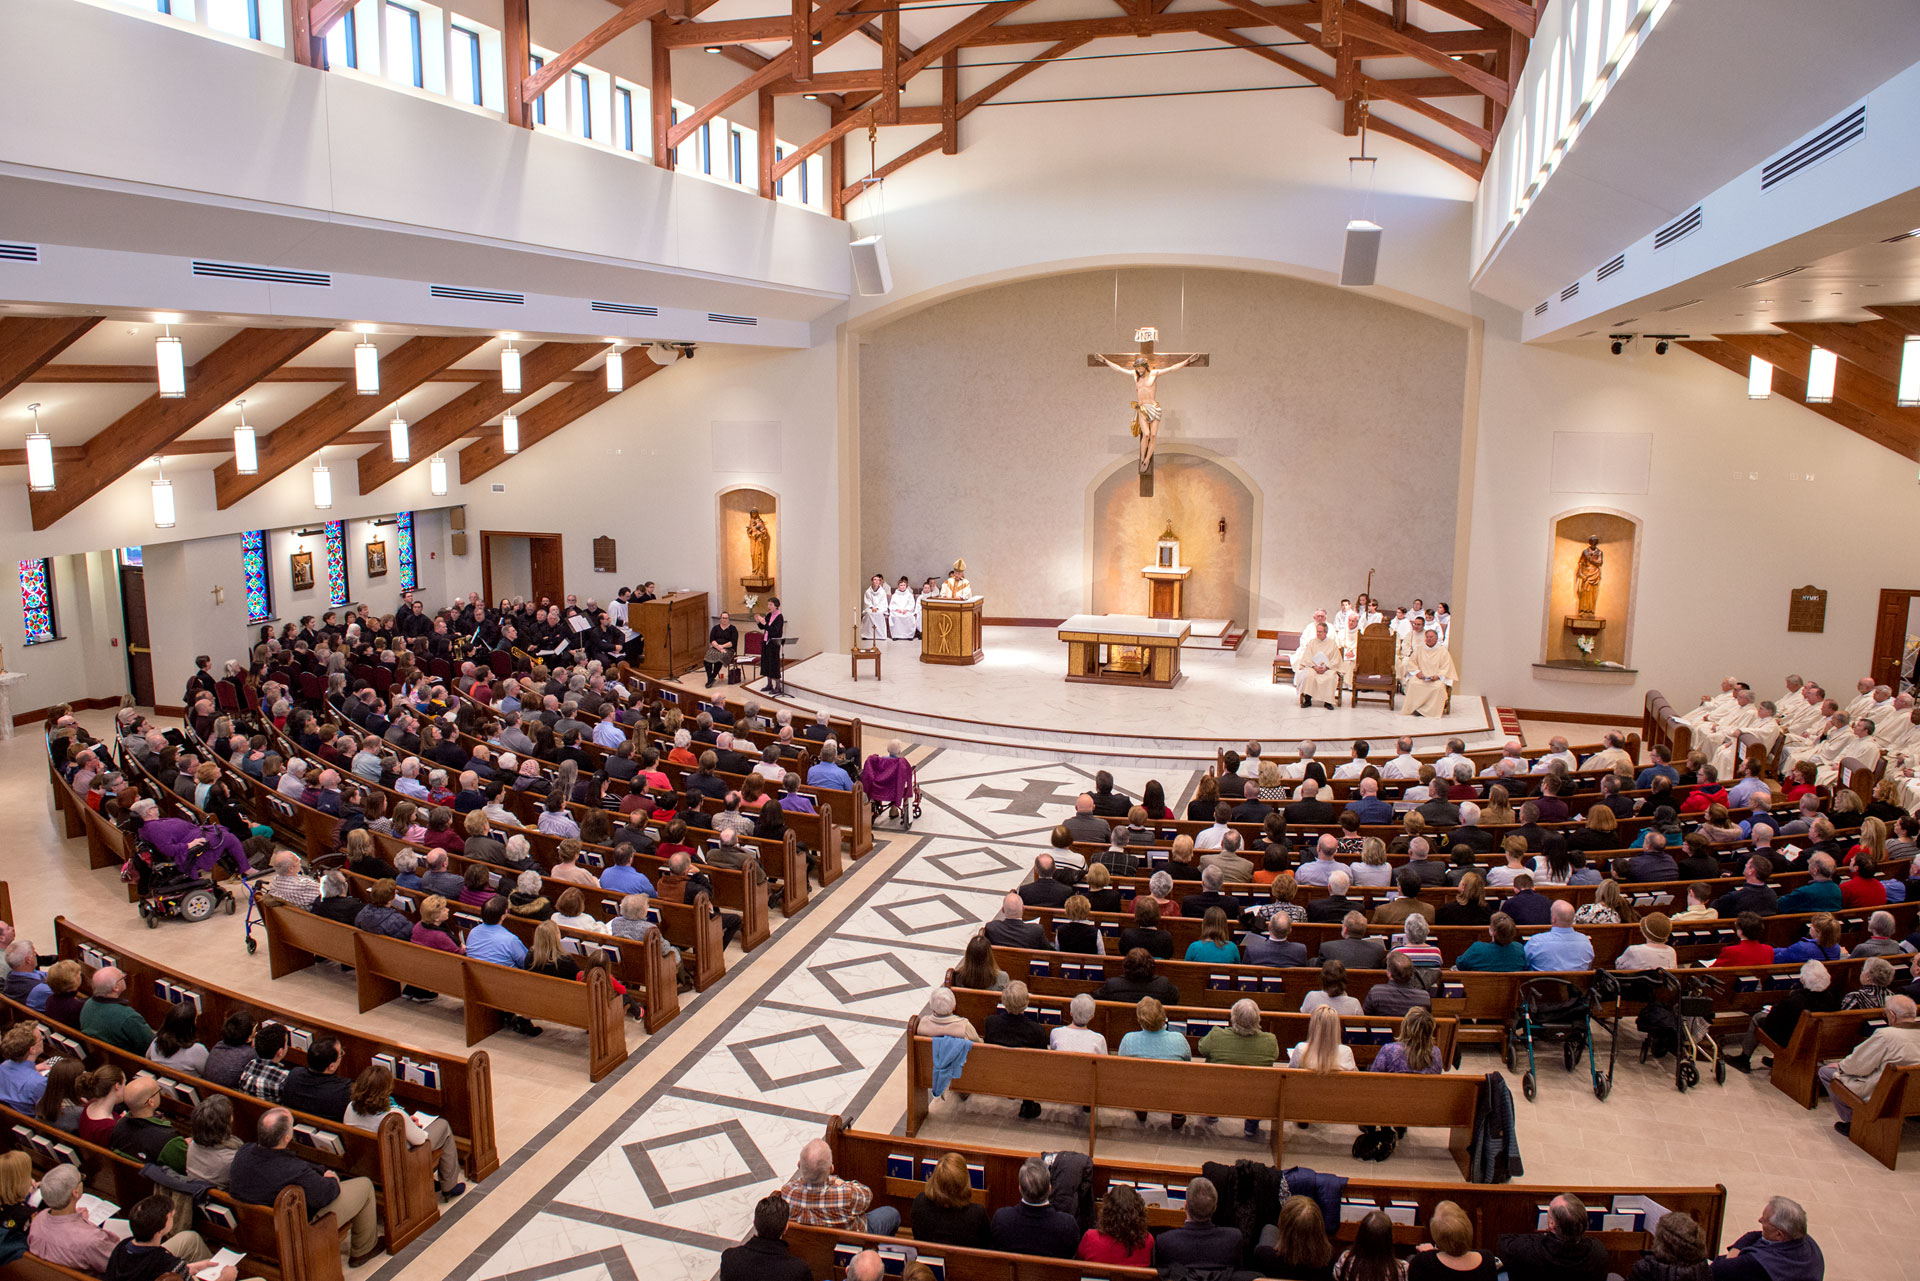 Bishop Salvatore R. Matano gives the homily during the Solemn Mass of Dedication at the newly built St. Pius Tenth Church in Chili March 19. (Courier photo by Jeff Witherow)